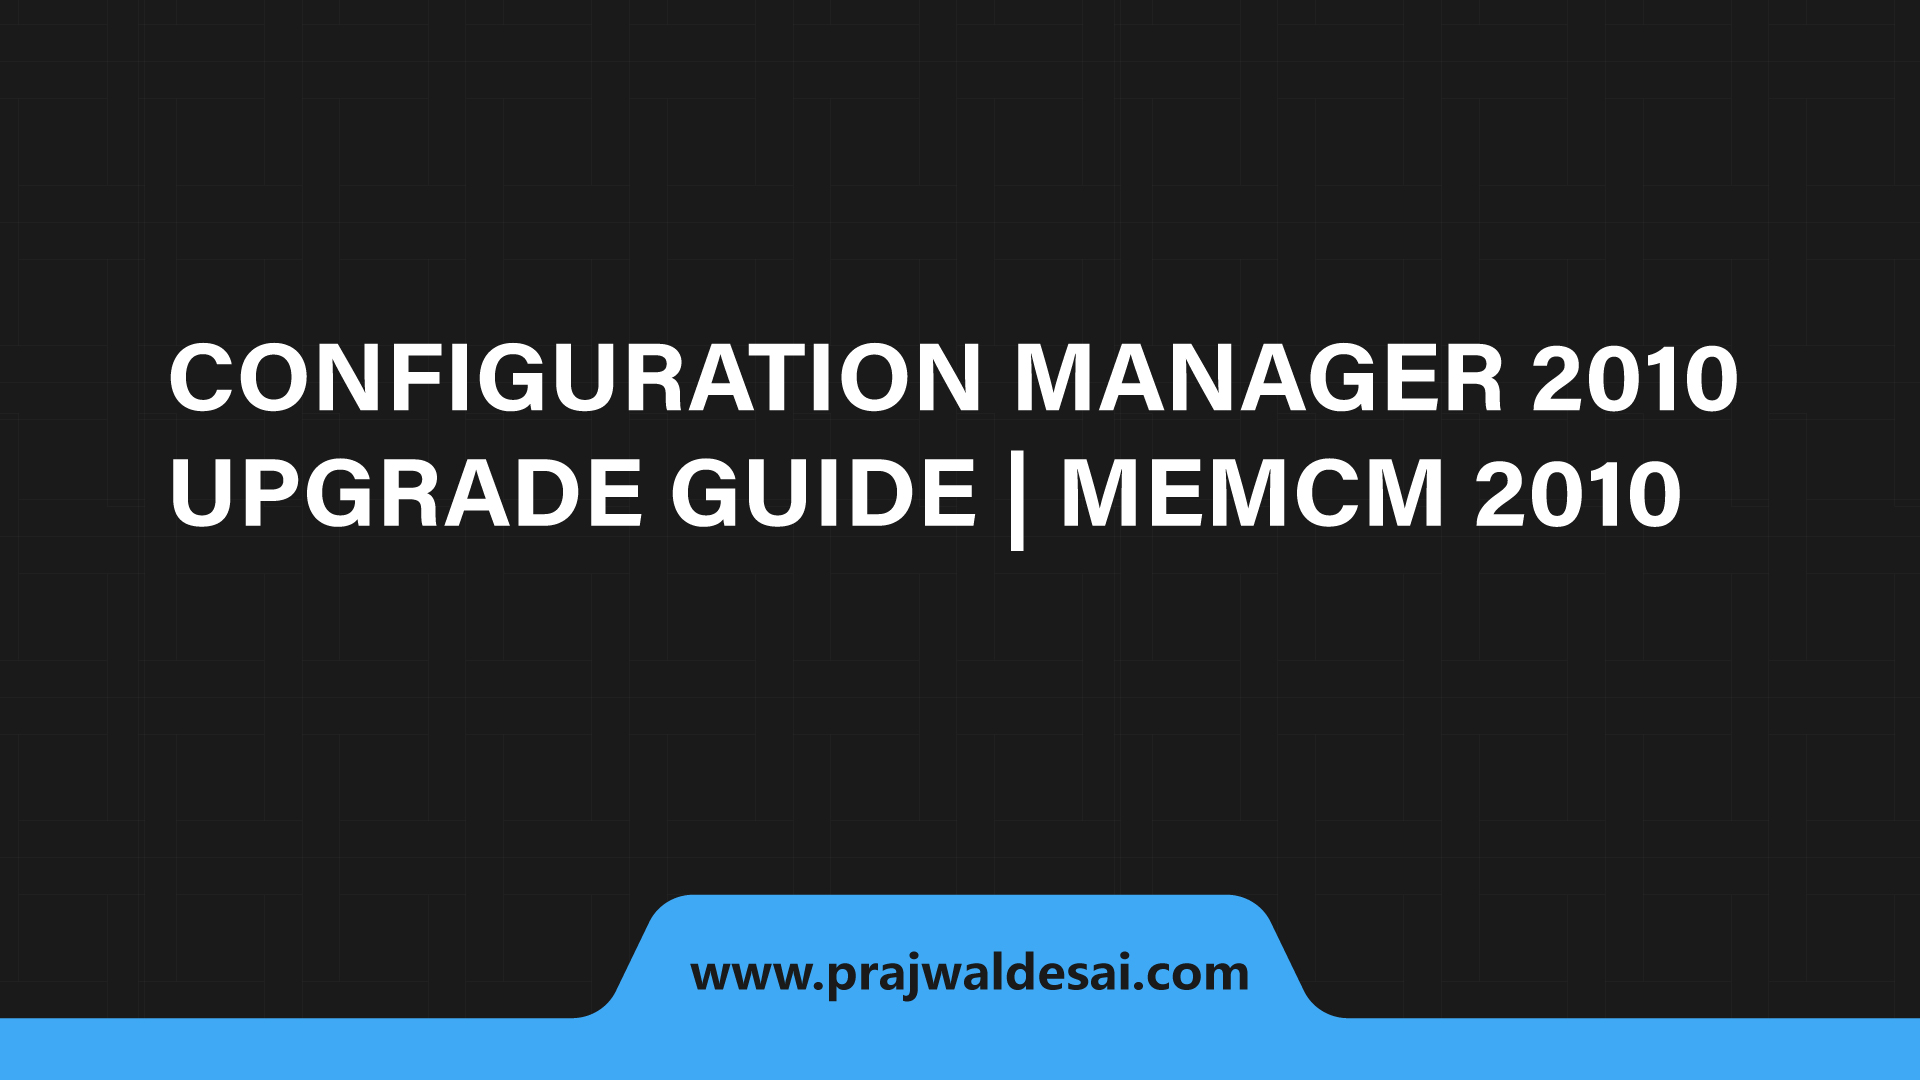 SCCM 2010 Upgrade Guide